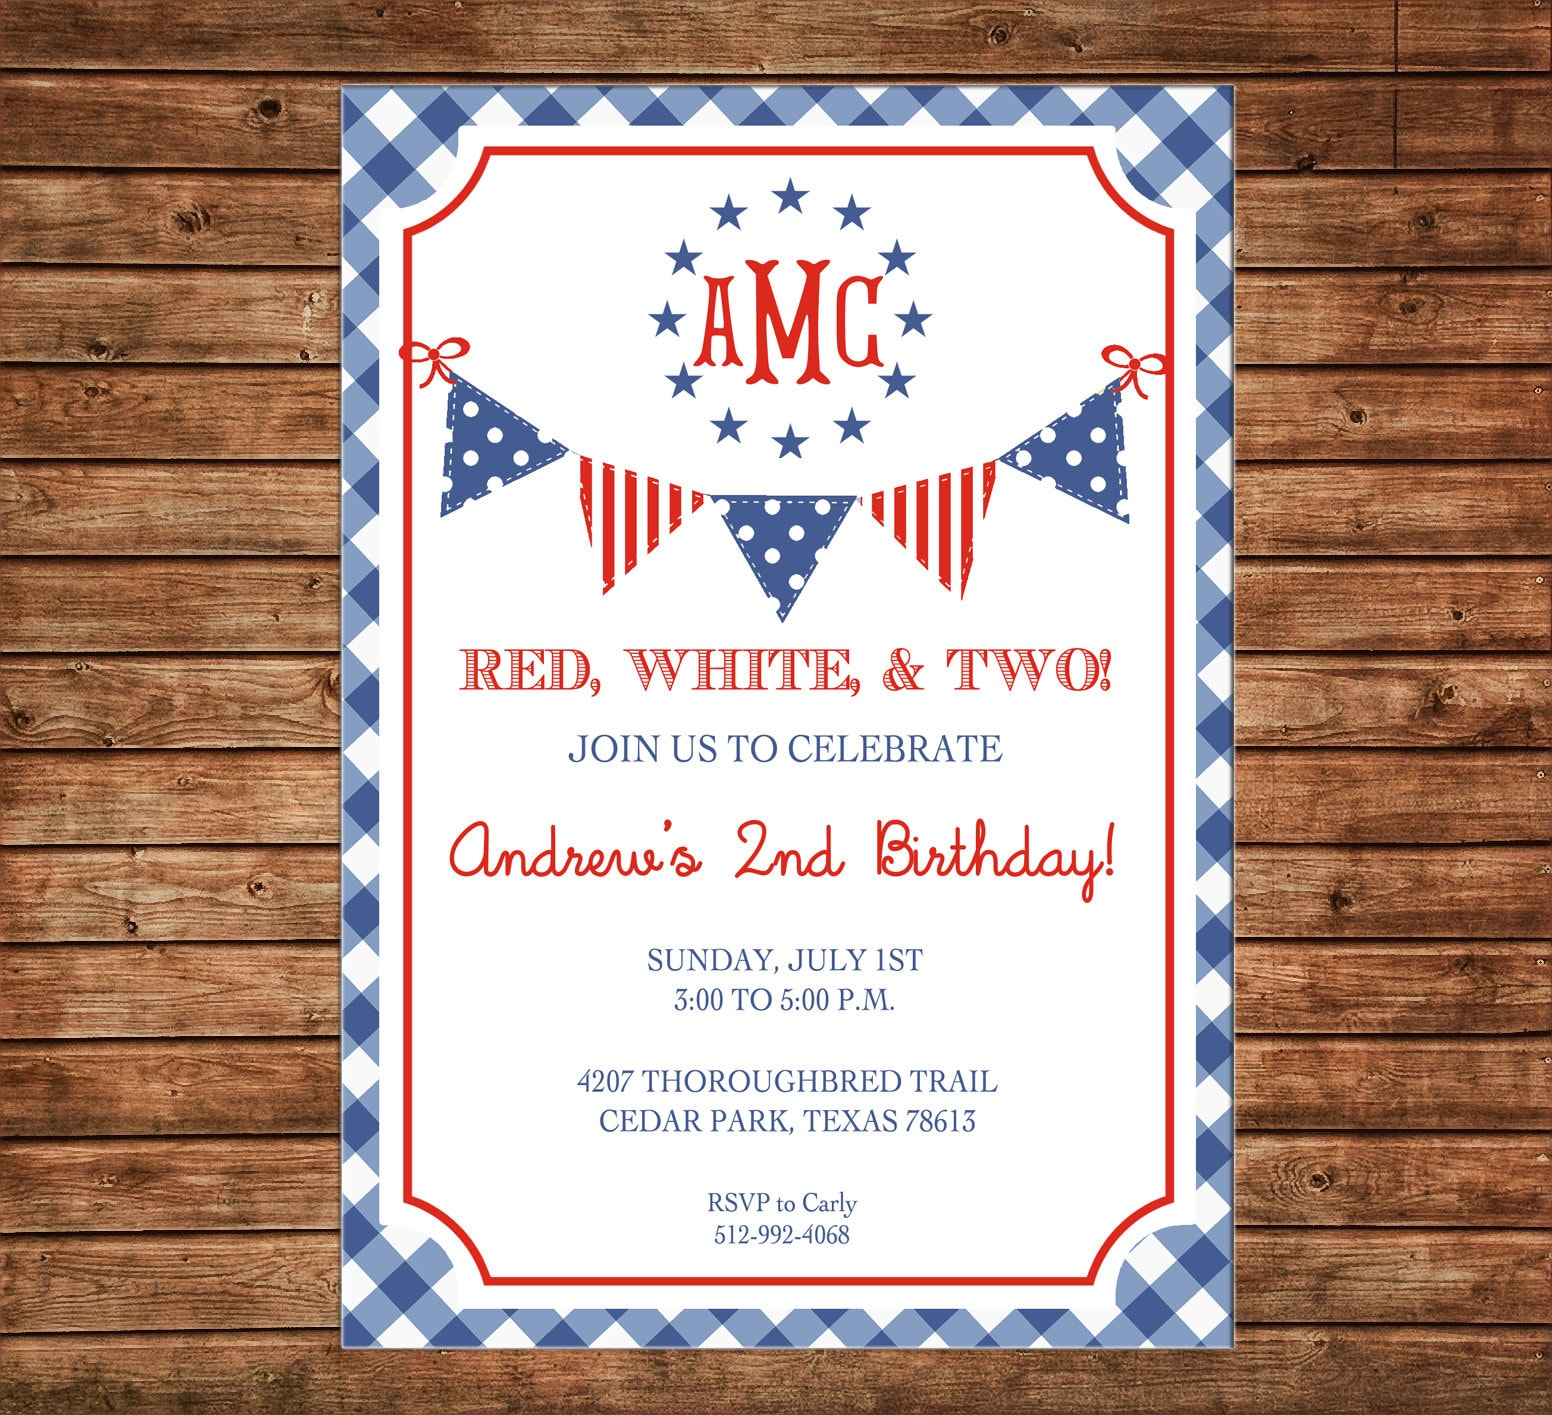 photo relating to Free Printable Patriotic Invitations called Invitation Crimson White 2 Gingham Patriotic Monogram